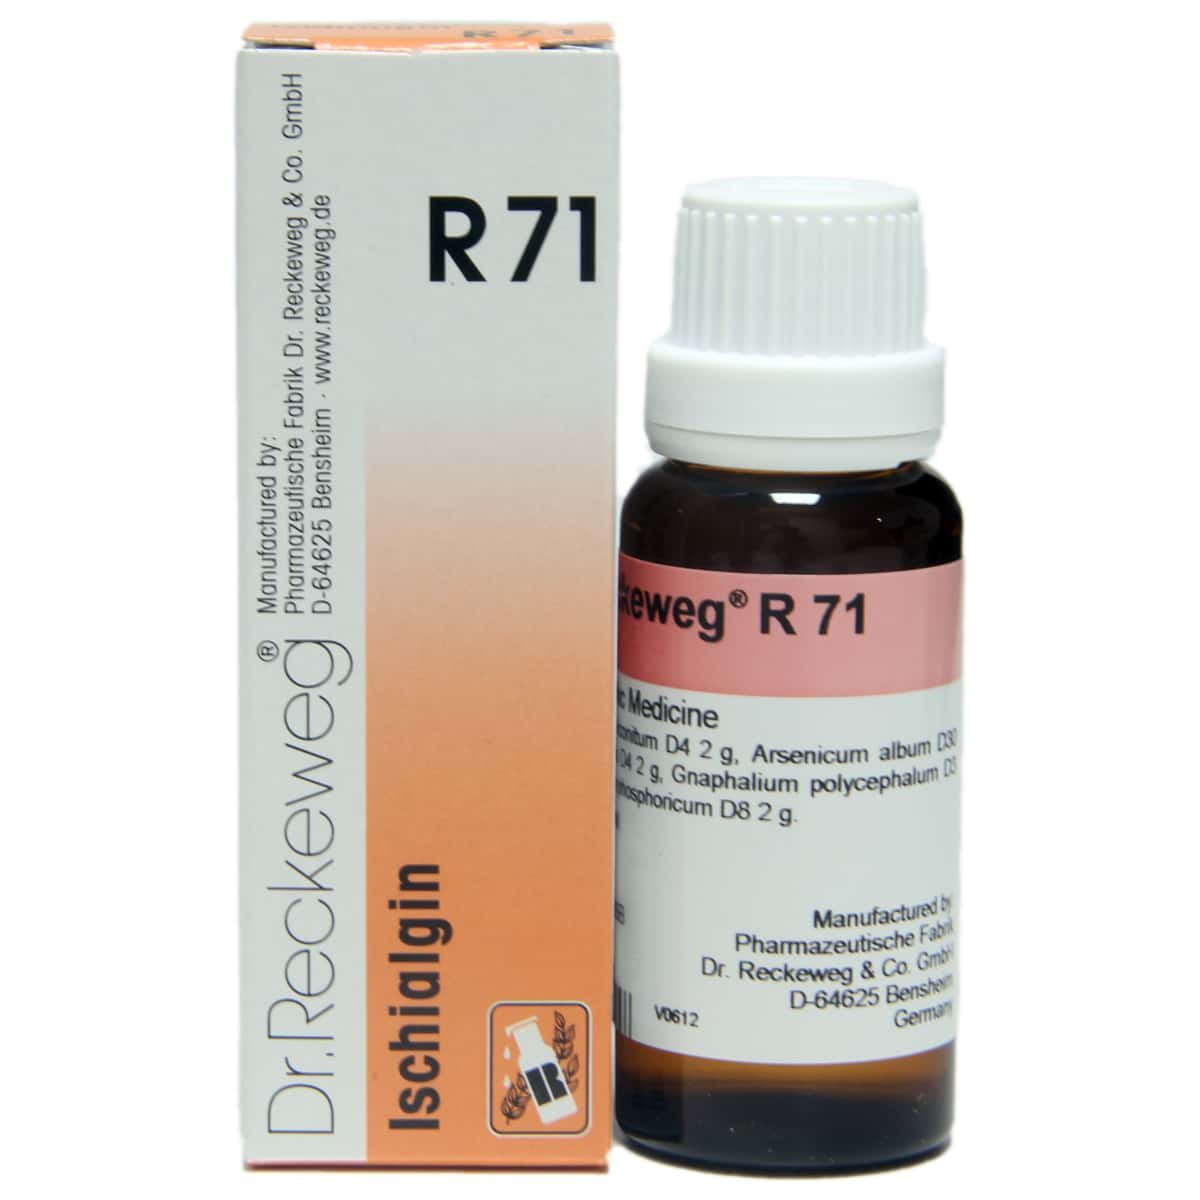 R71-Homeopathicology.com